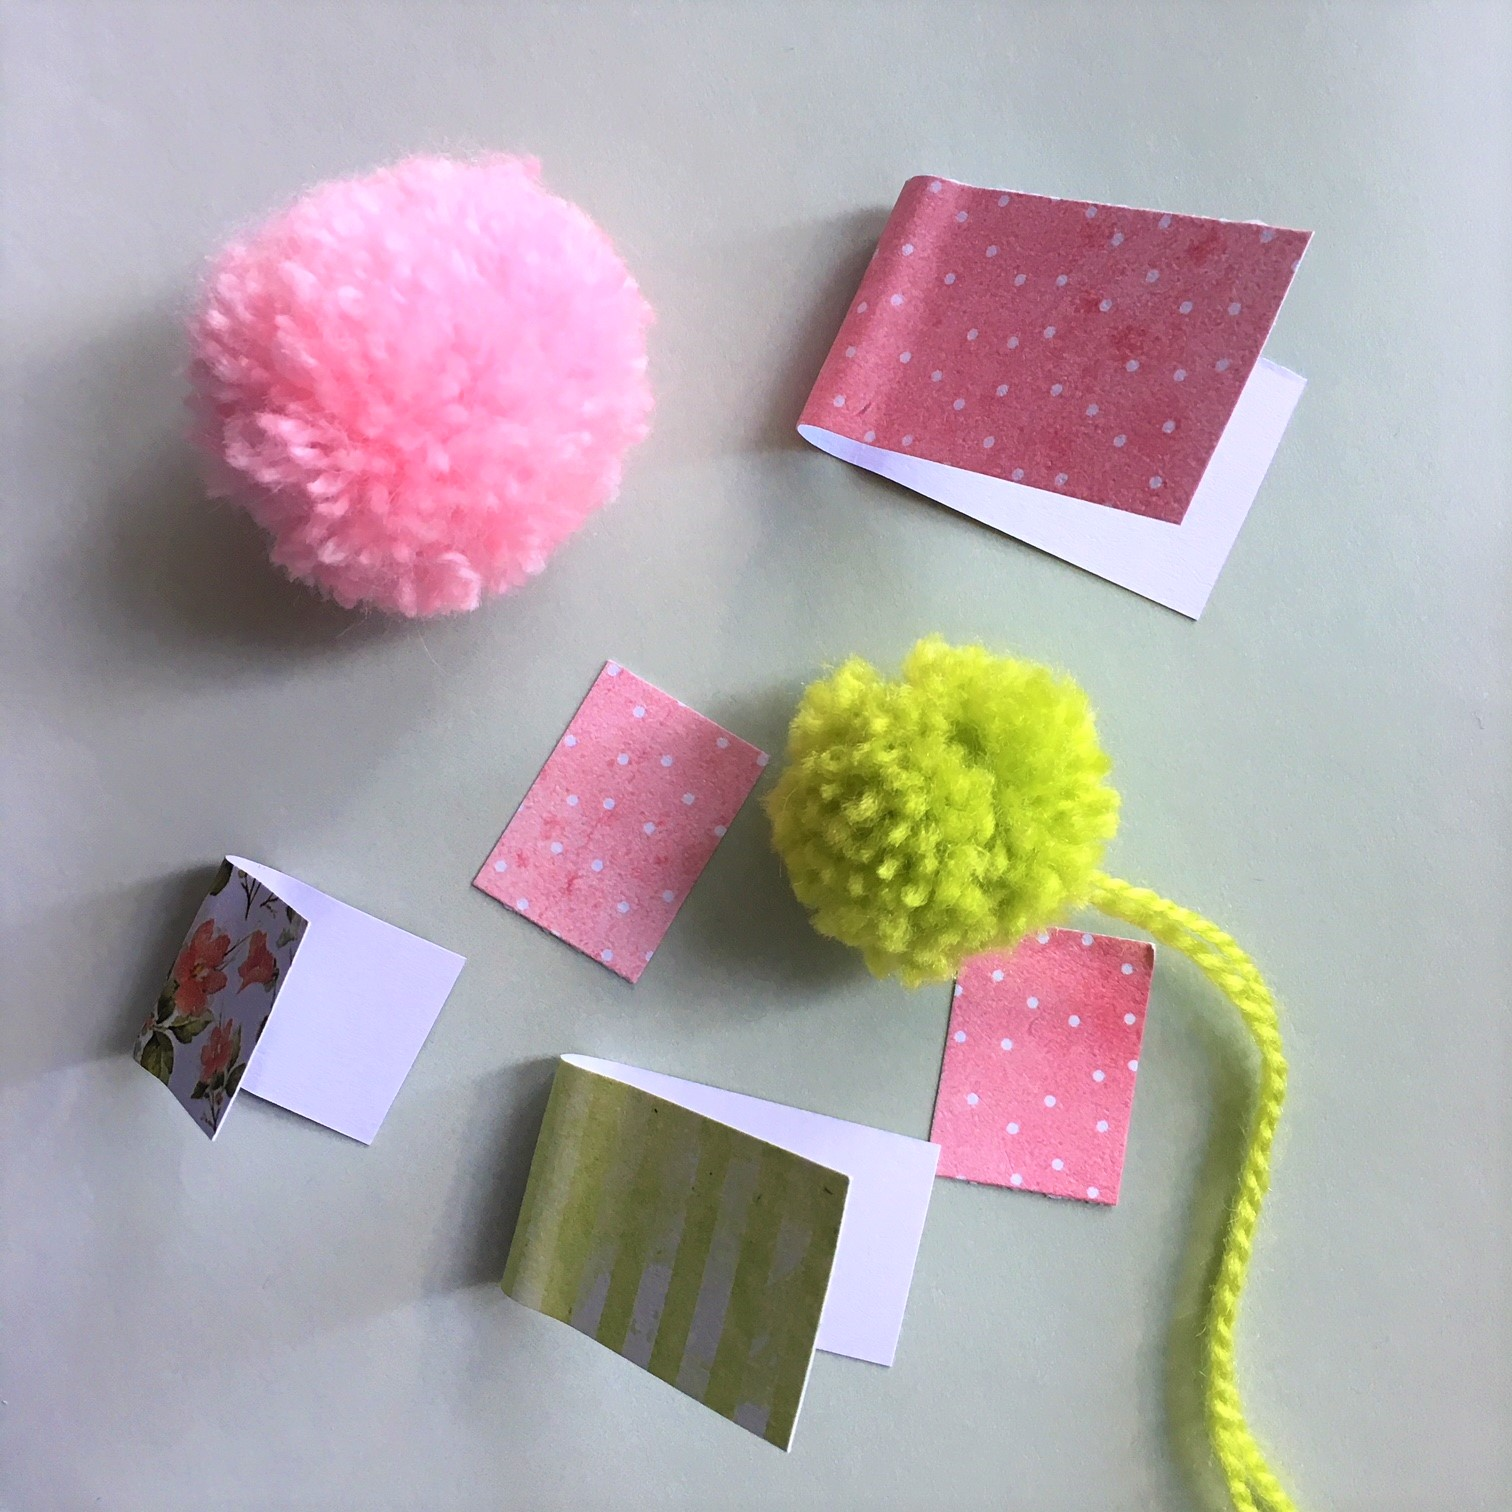 pompoms and paper rectangles